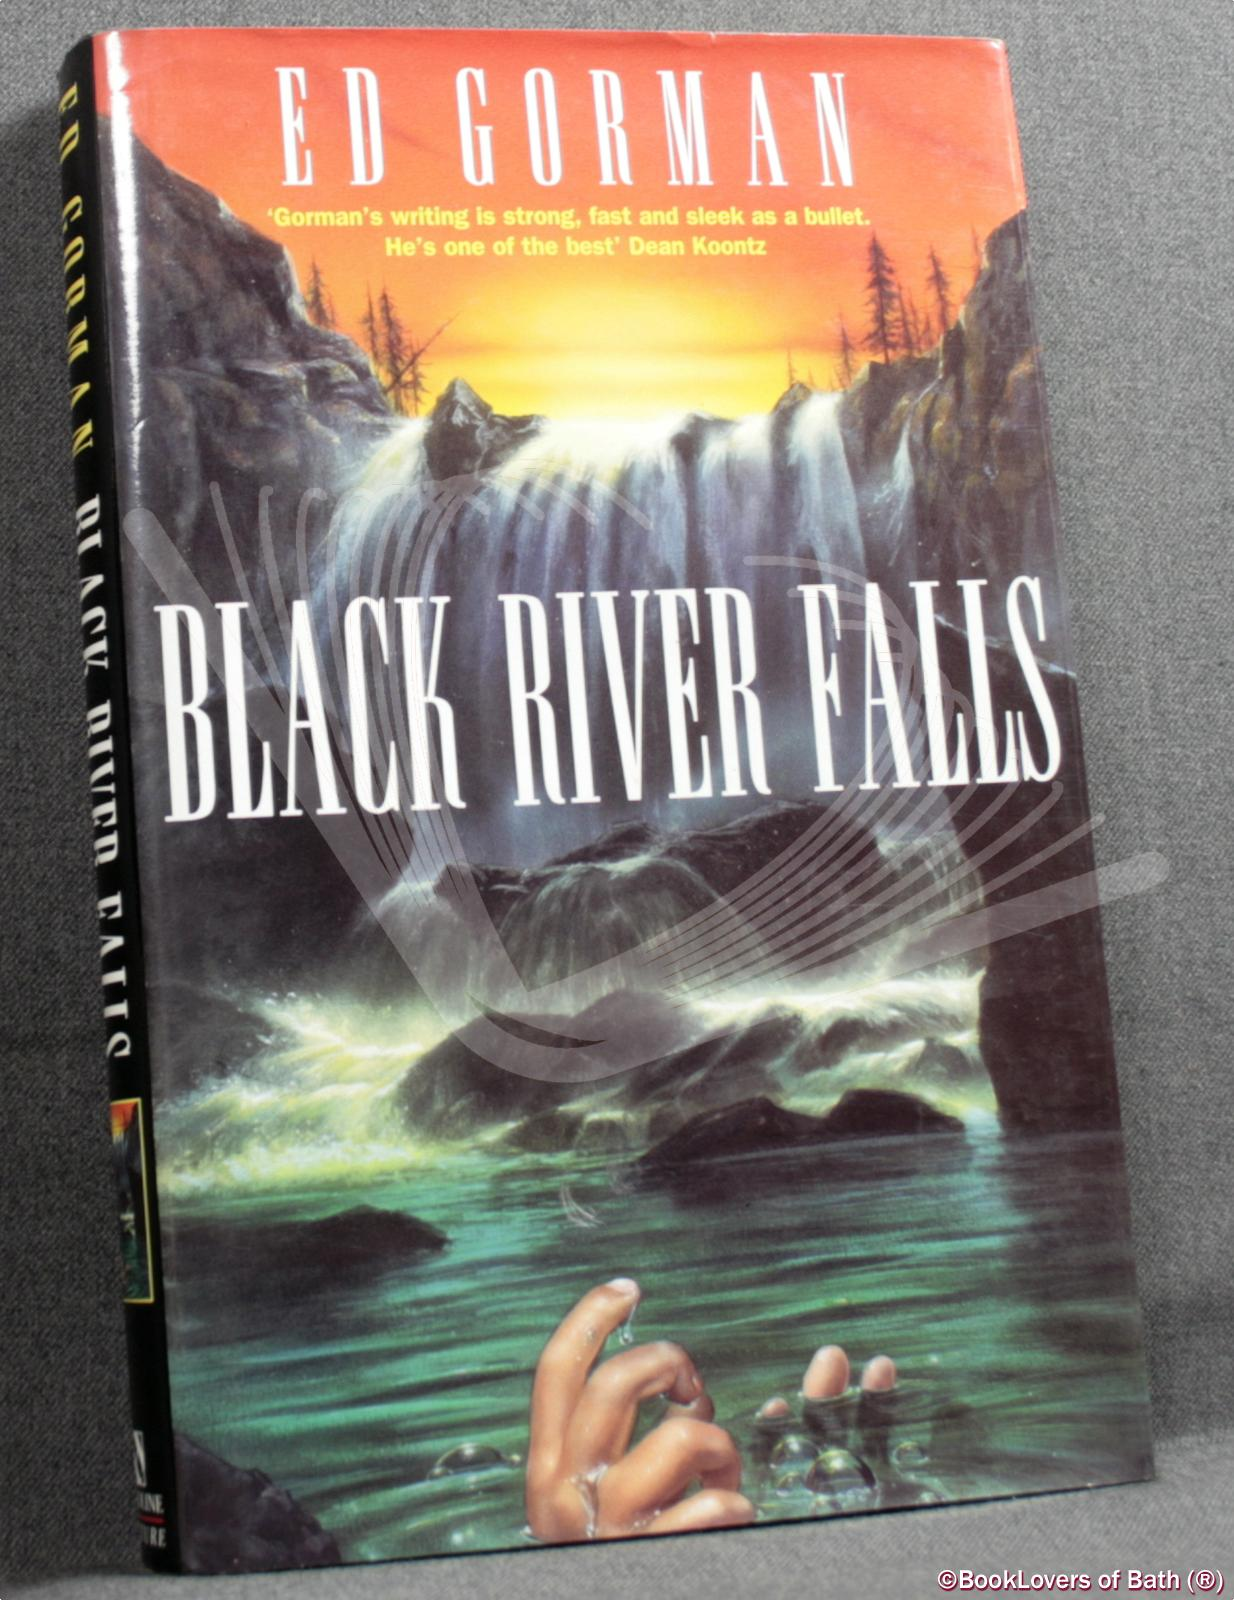 Black River Falls - Ed Gorman